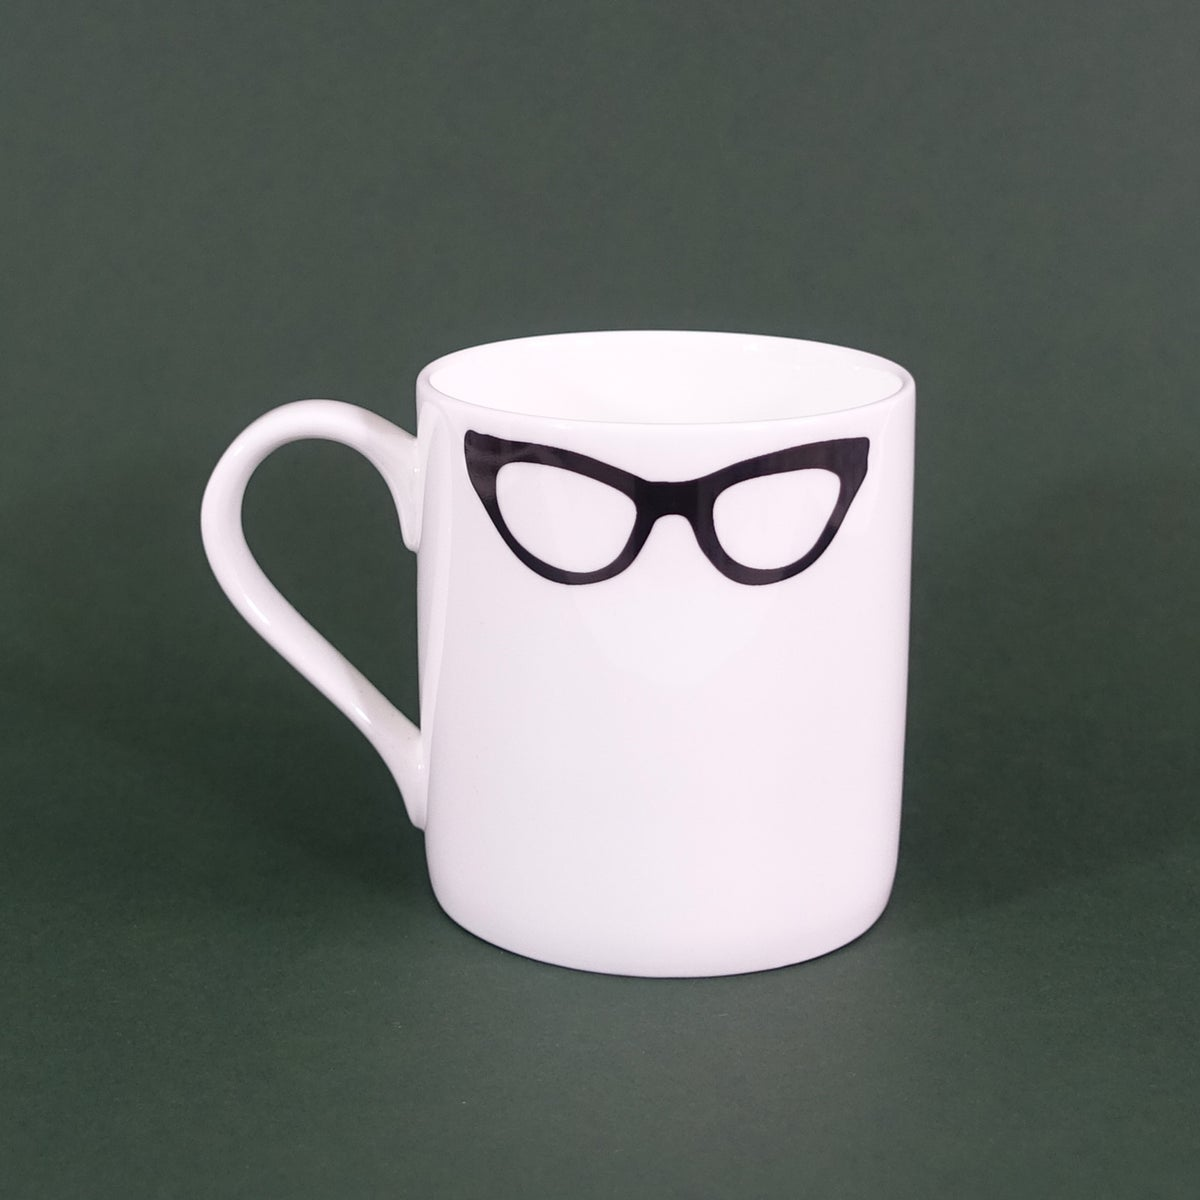 Image of Spectacle Mug - Helmut & Fritz